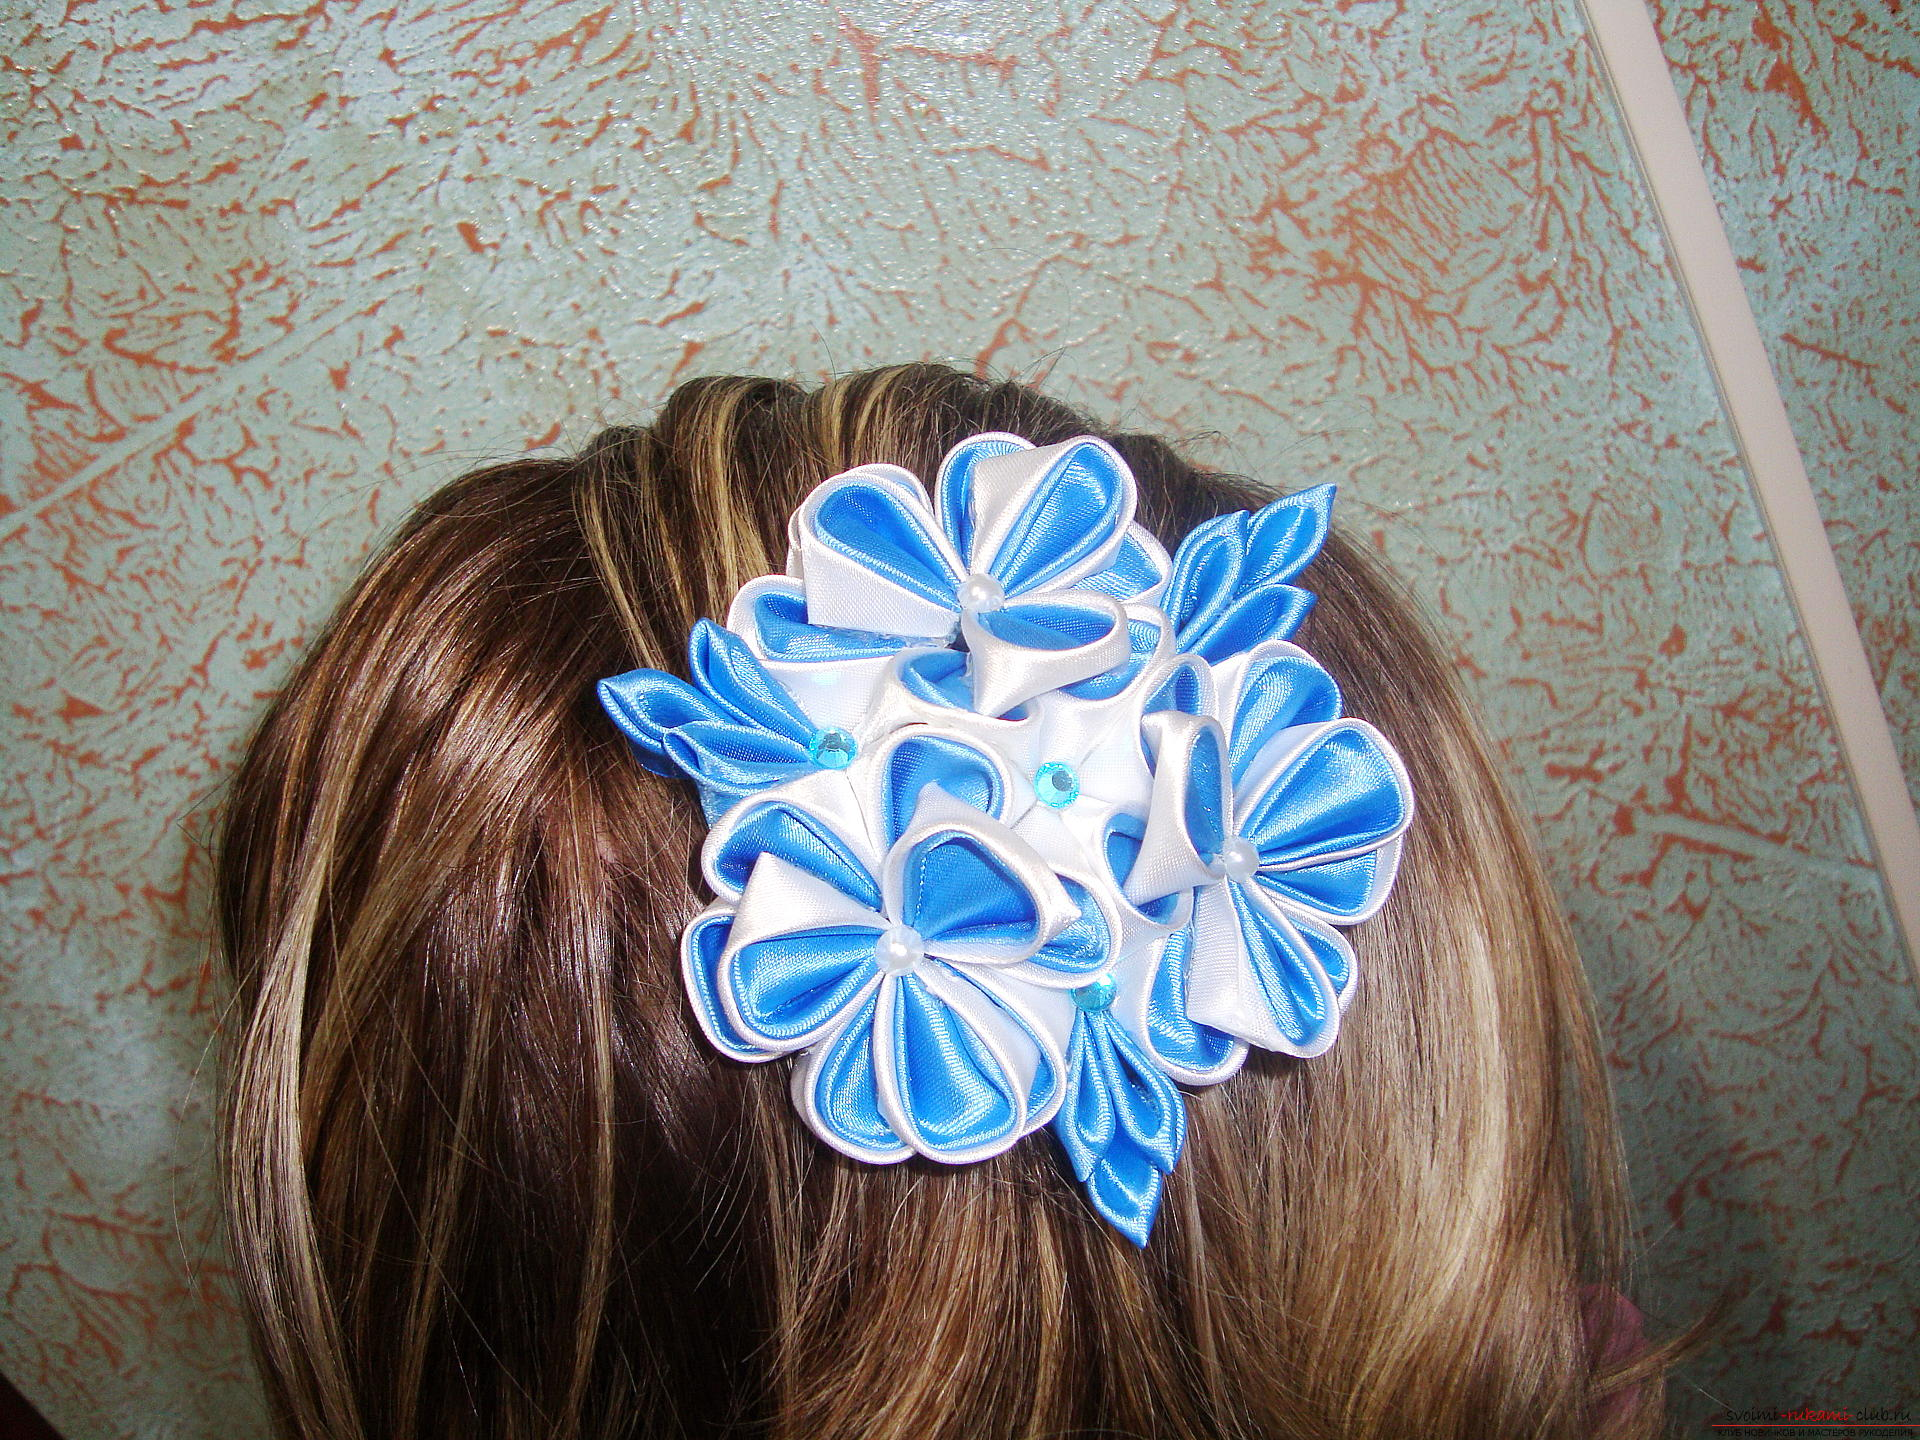 Photo instruction on making hair clips from blue ribbons in Kansas technique. Photo number 16